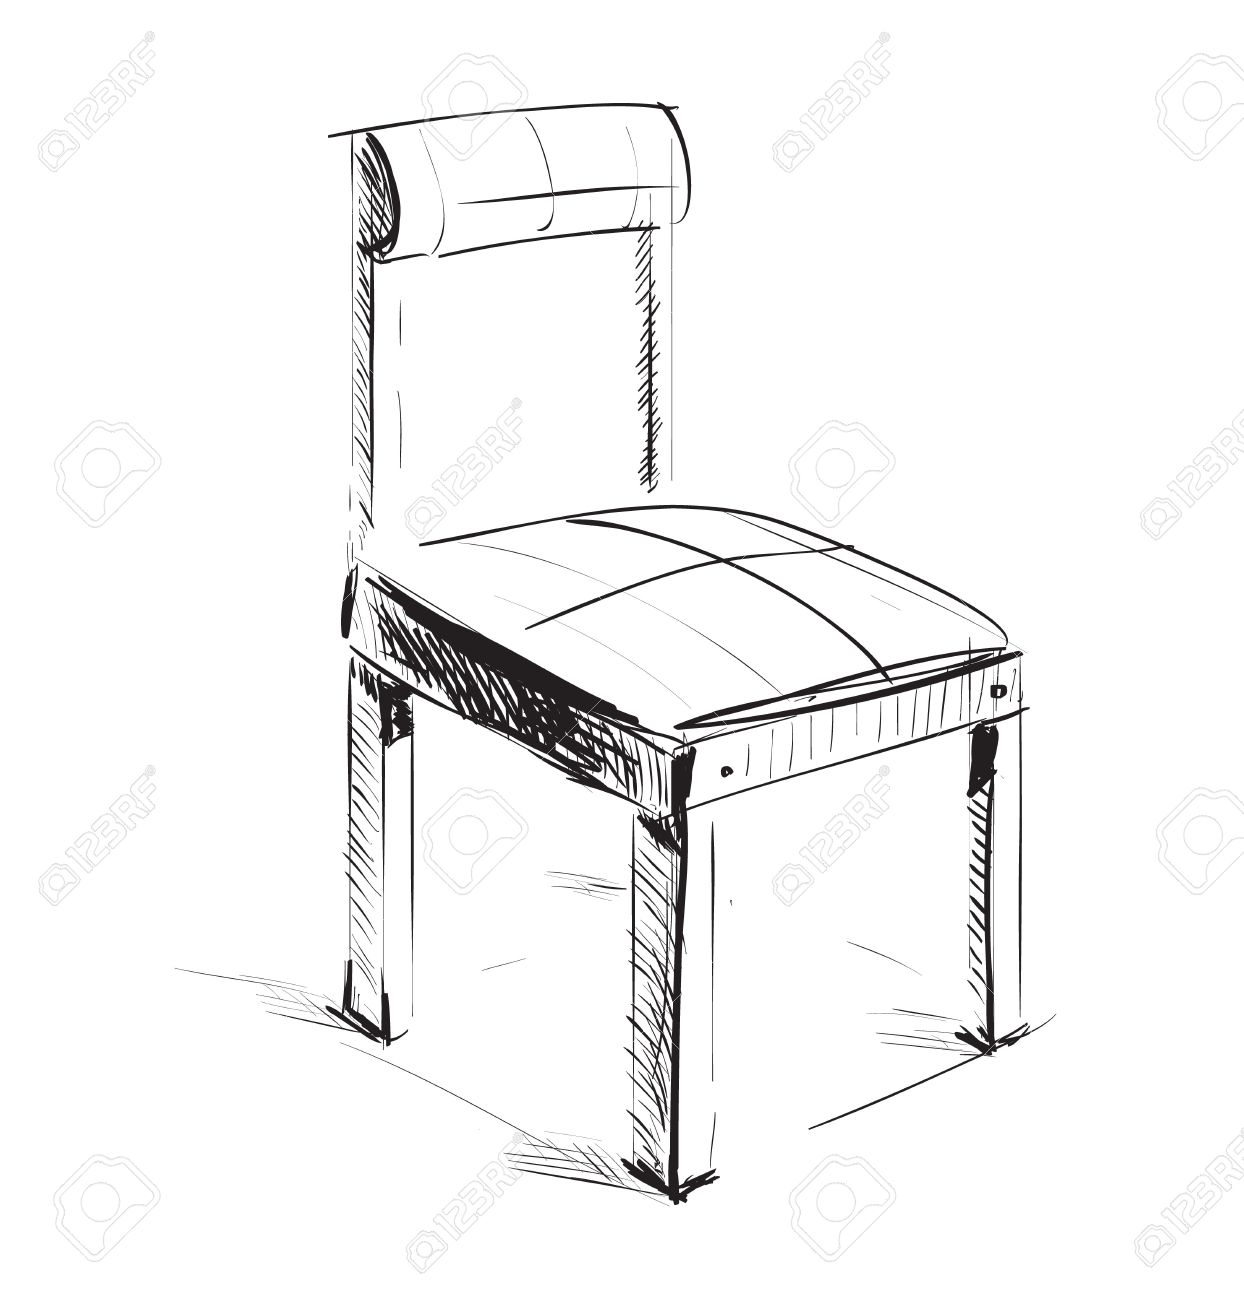 Chair Sketch sketch chair icon royalty free cliparts, vectors, and stock